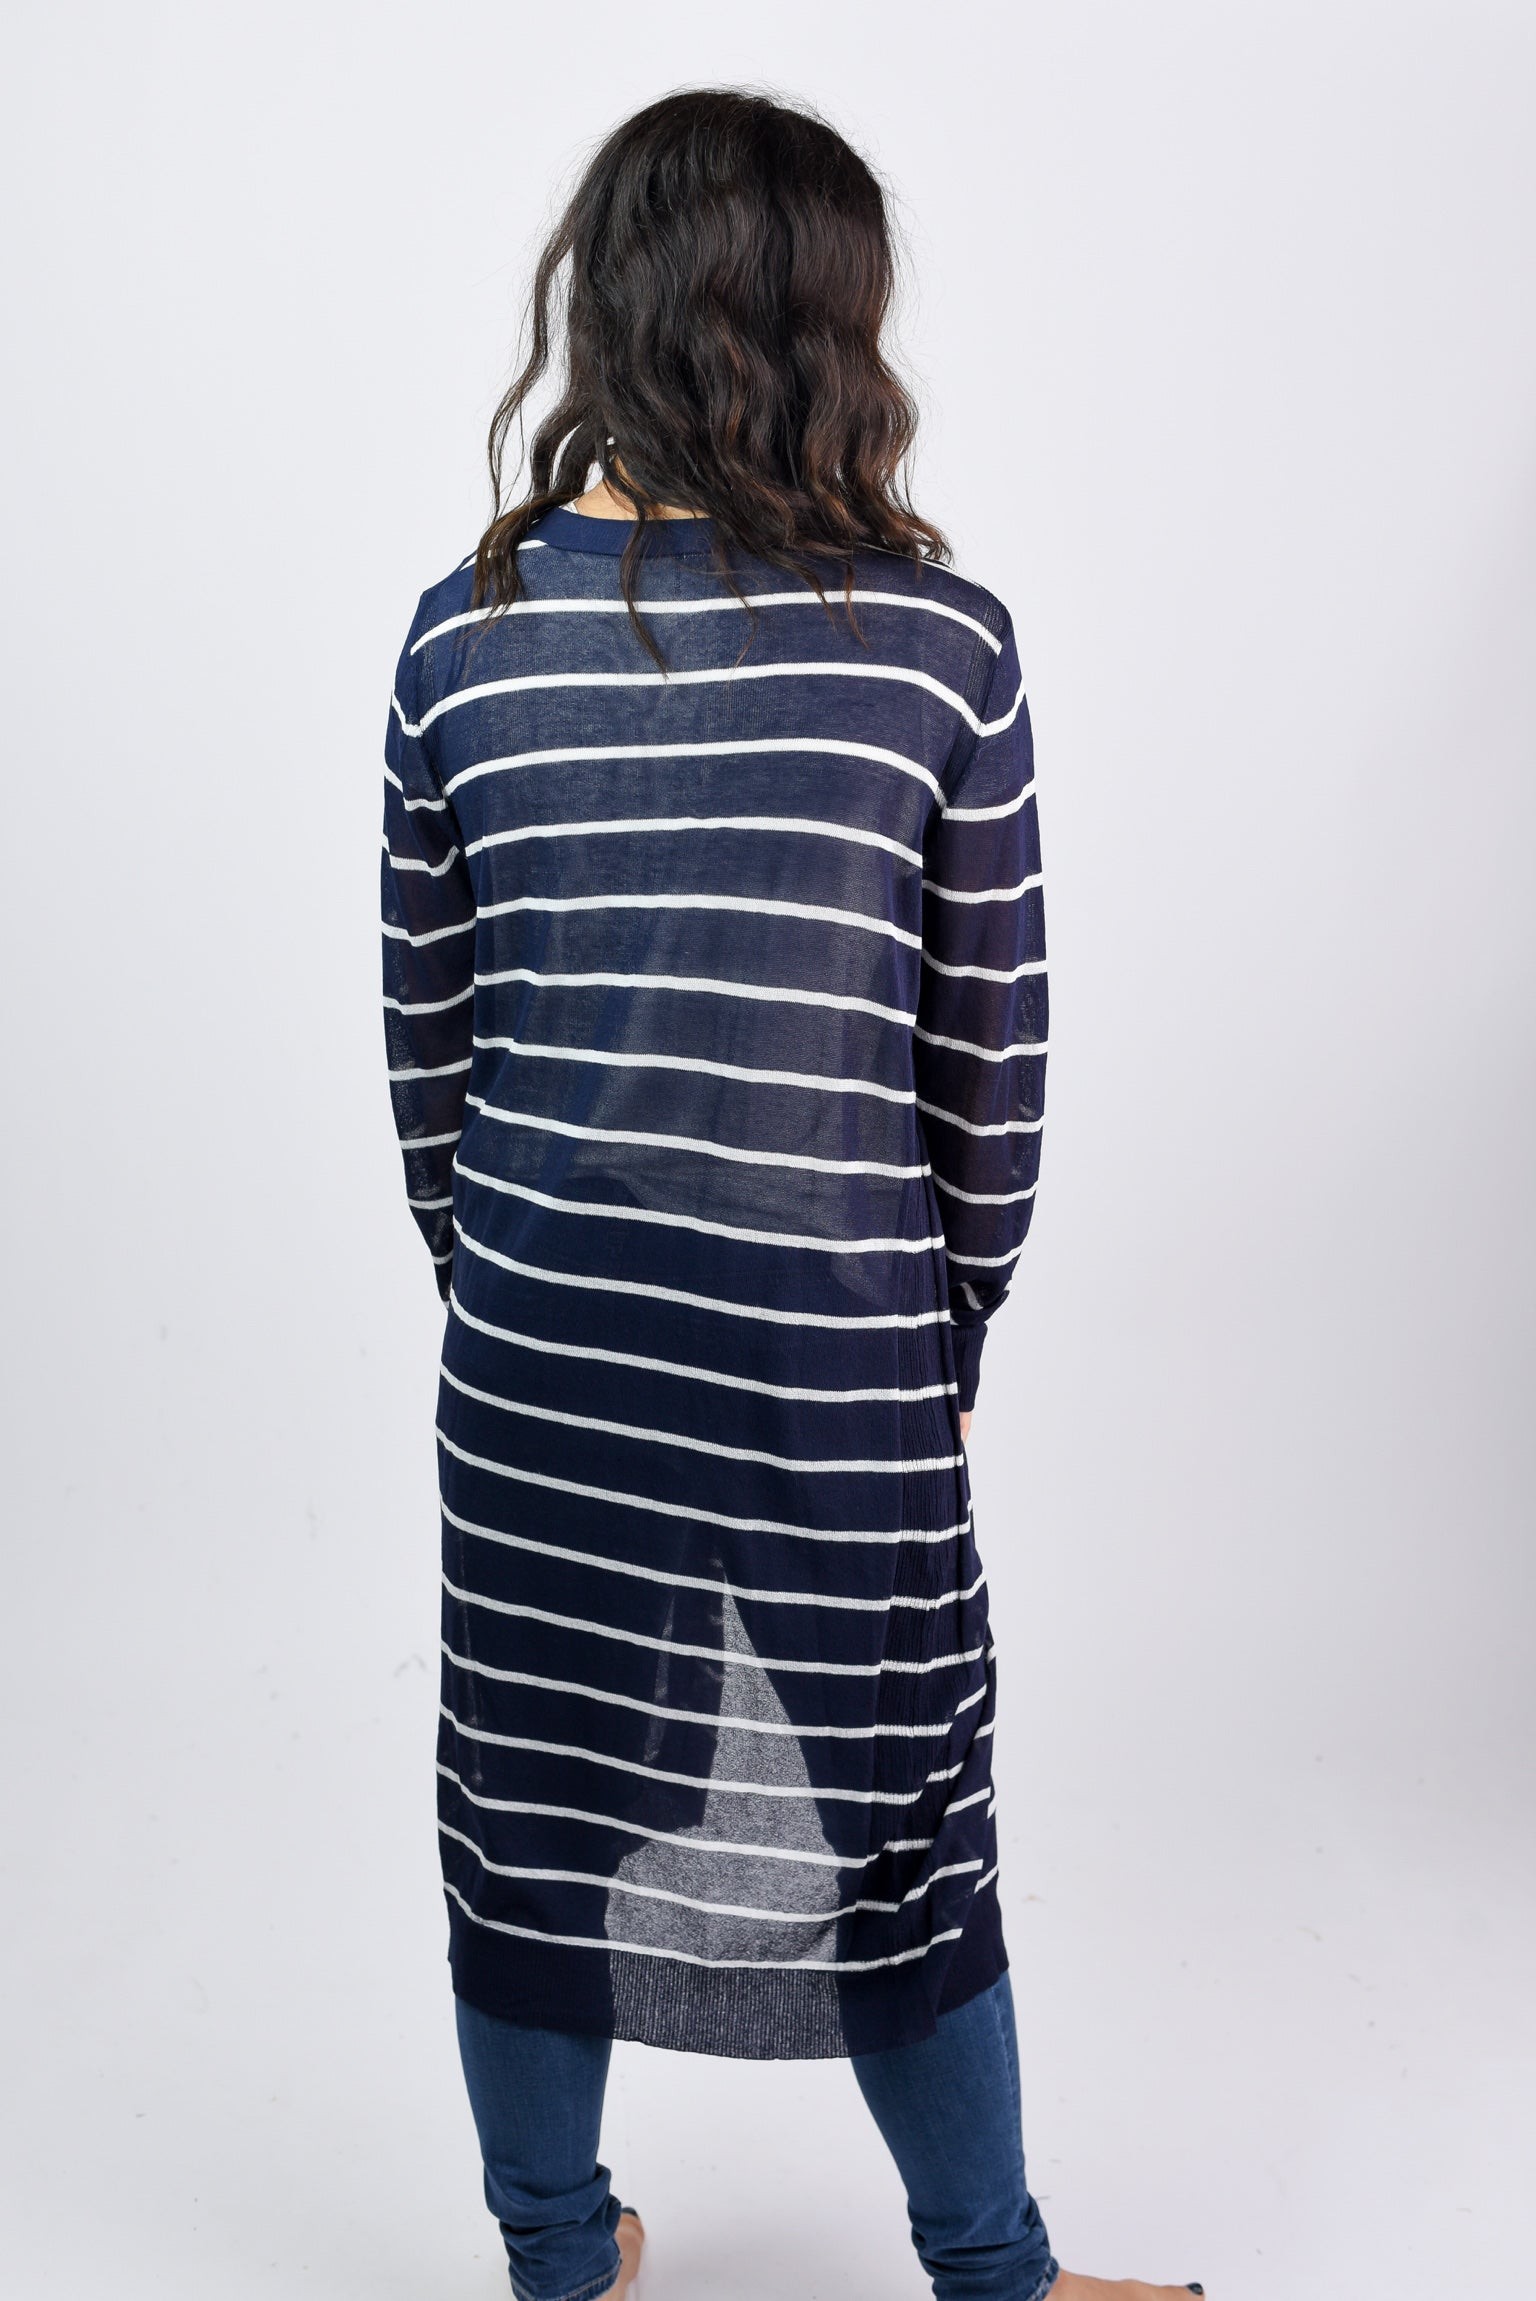 Revelation Striped Cardigan- Navy & White